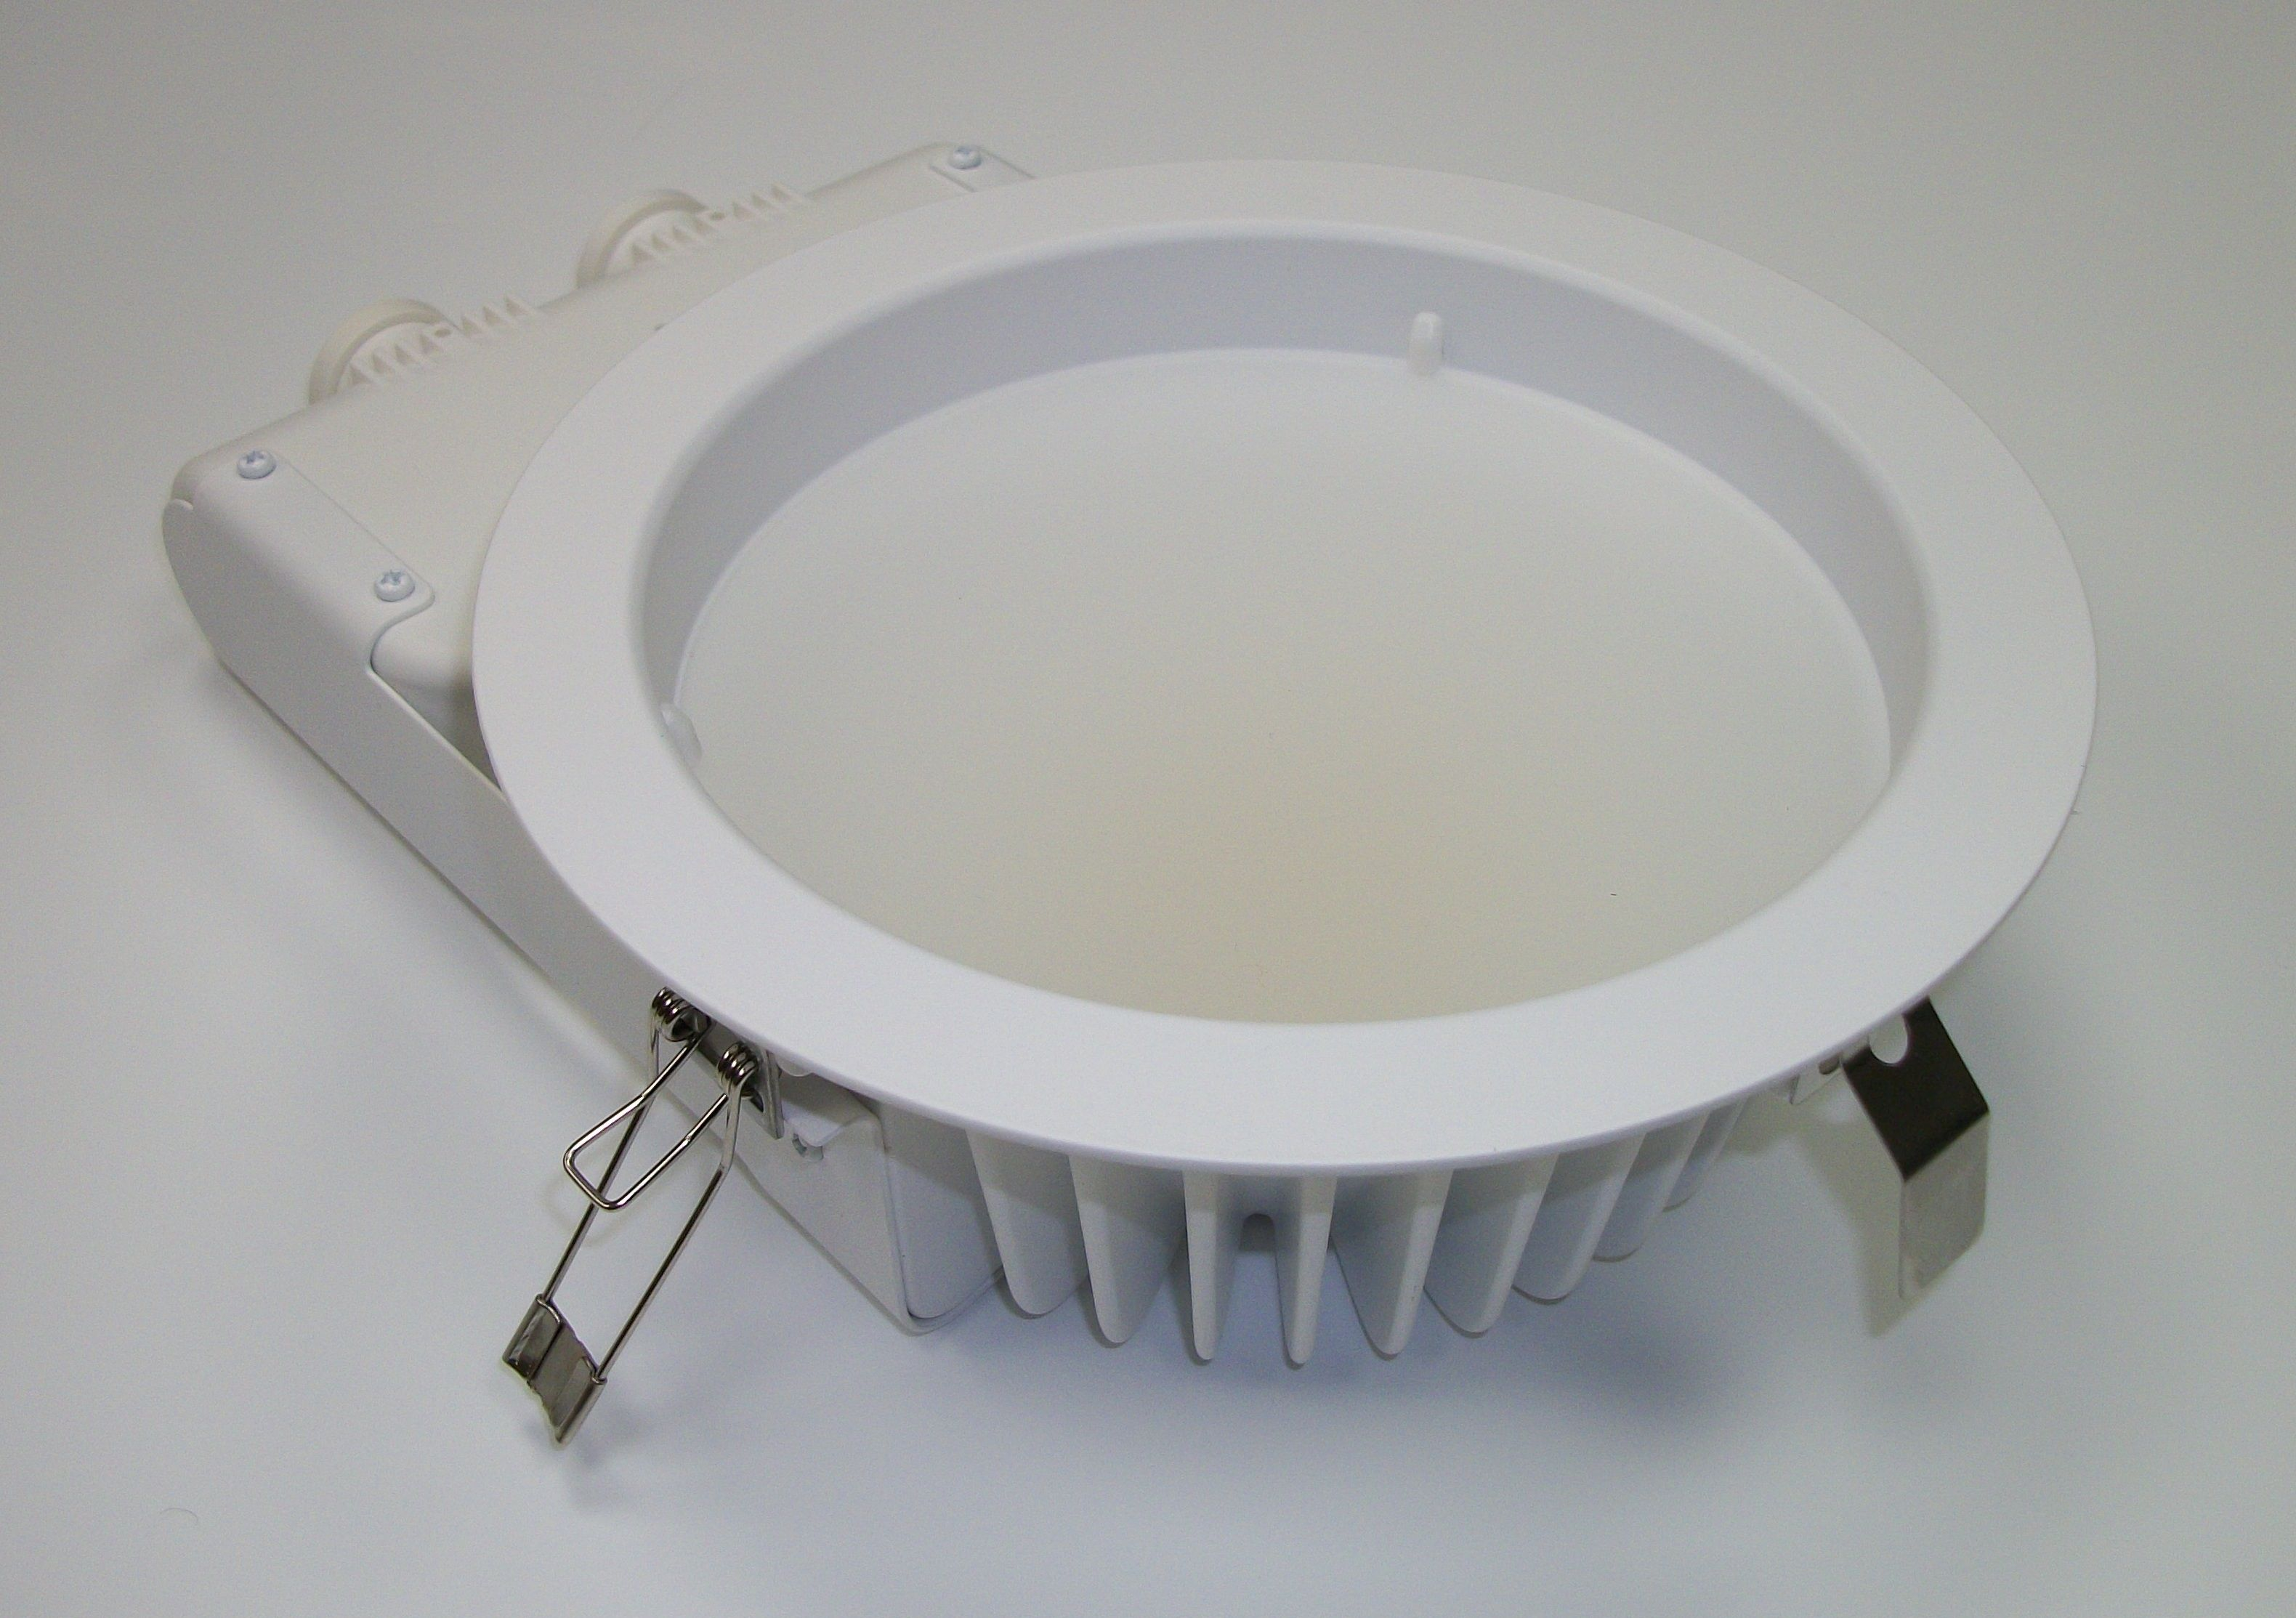 Low profile led recessed ceiling lights httpscartclub low profile led recessed ceiling lights mozeypictures Images